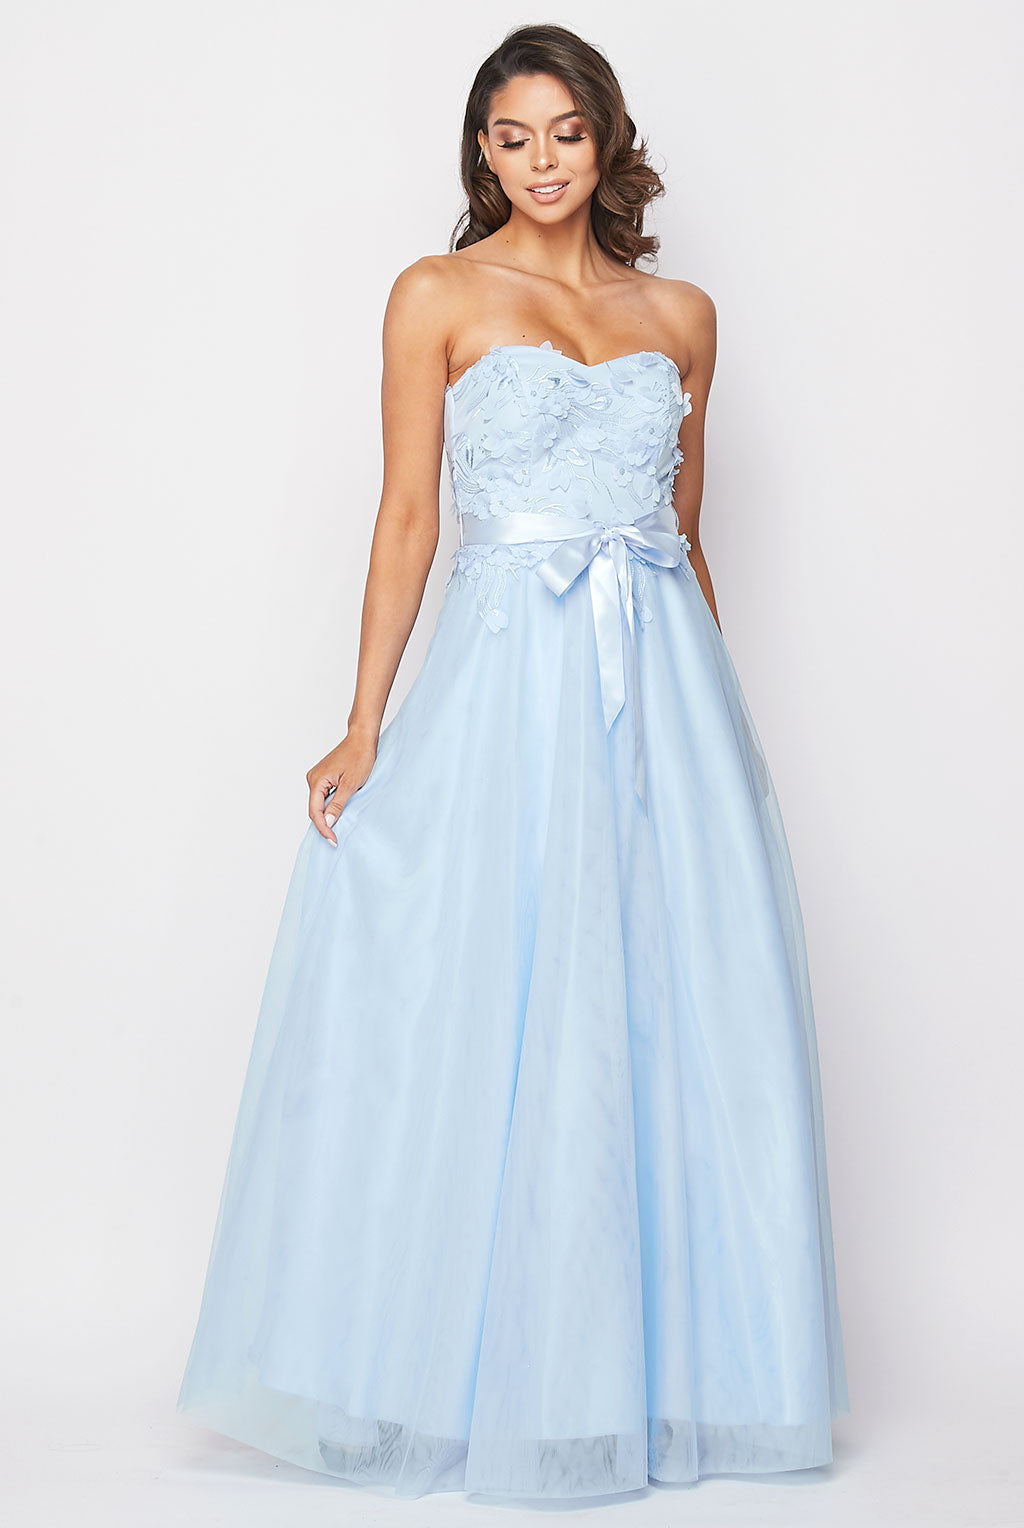 Teeze Me | Strapless 3D Floral Applique Ball Gown | Light Blue